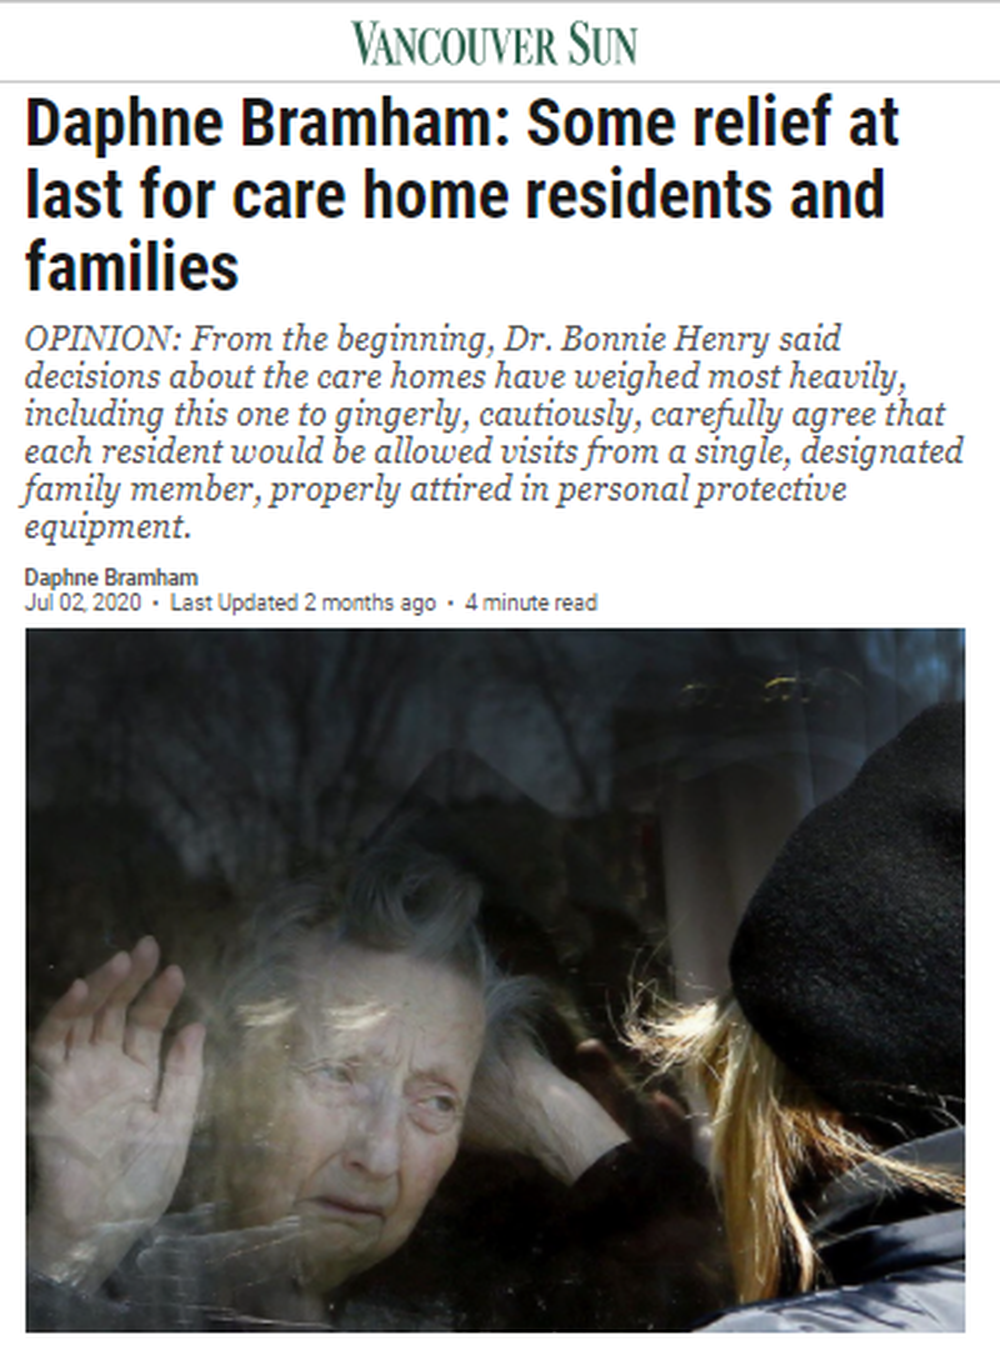 Daphne-Bramham-Some-relief-at-last-for-care-home-residents-and-families-Vancouver-Sun.